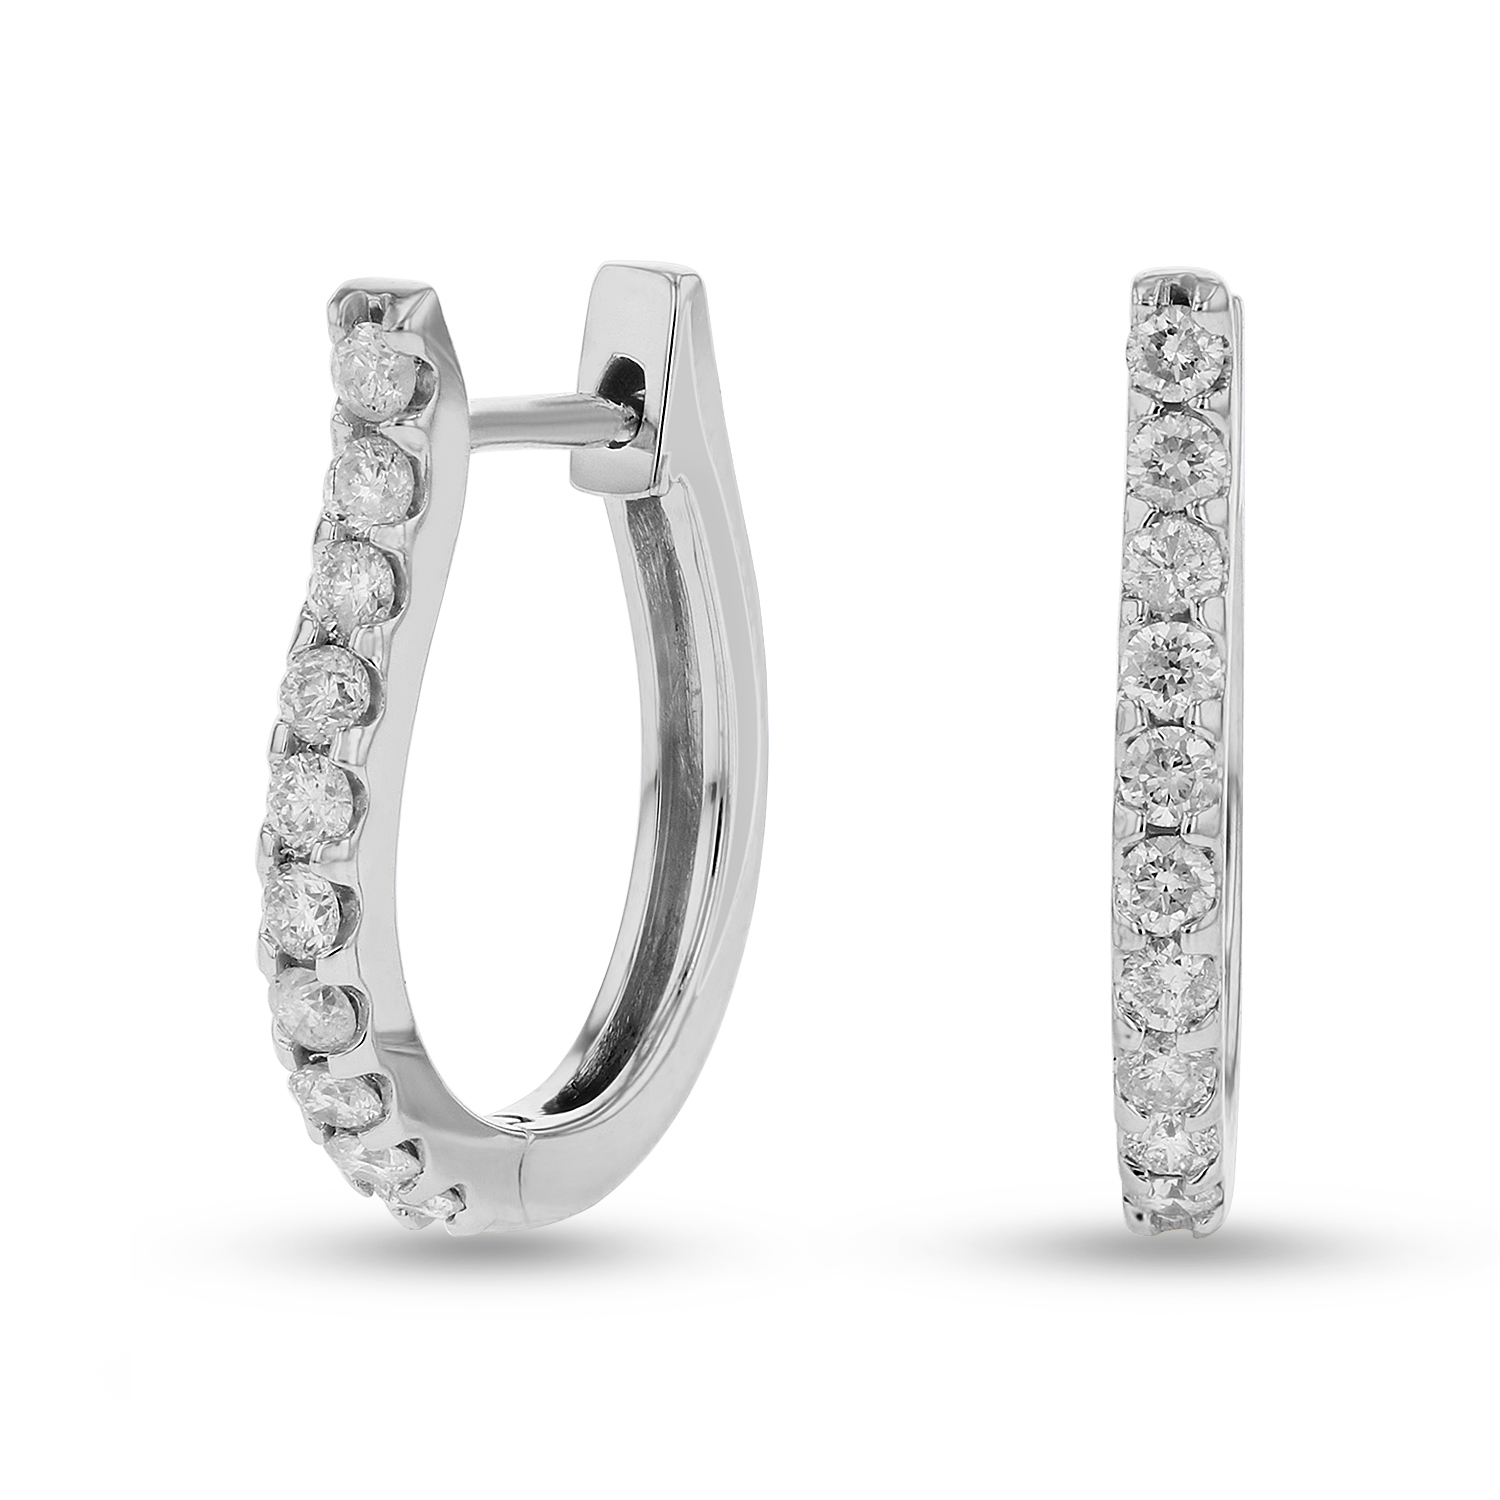 View 1/2ctw Diamond Hoop Earrings in 14k Gold